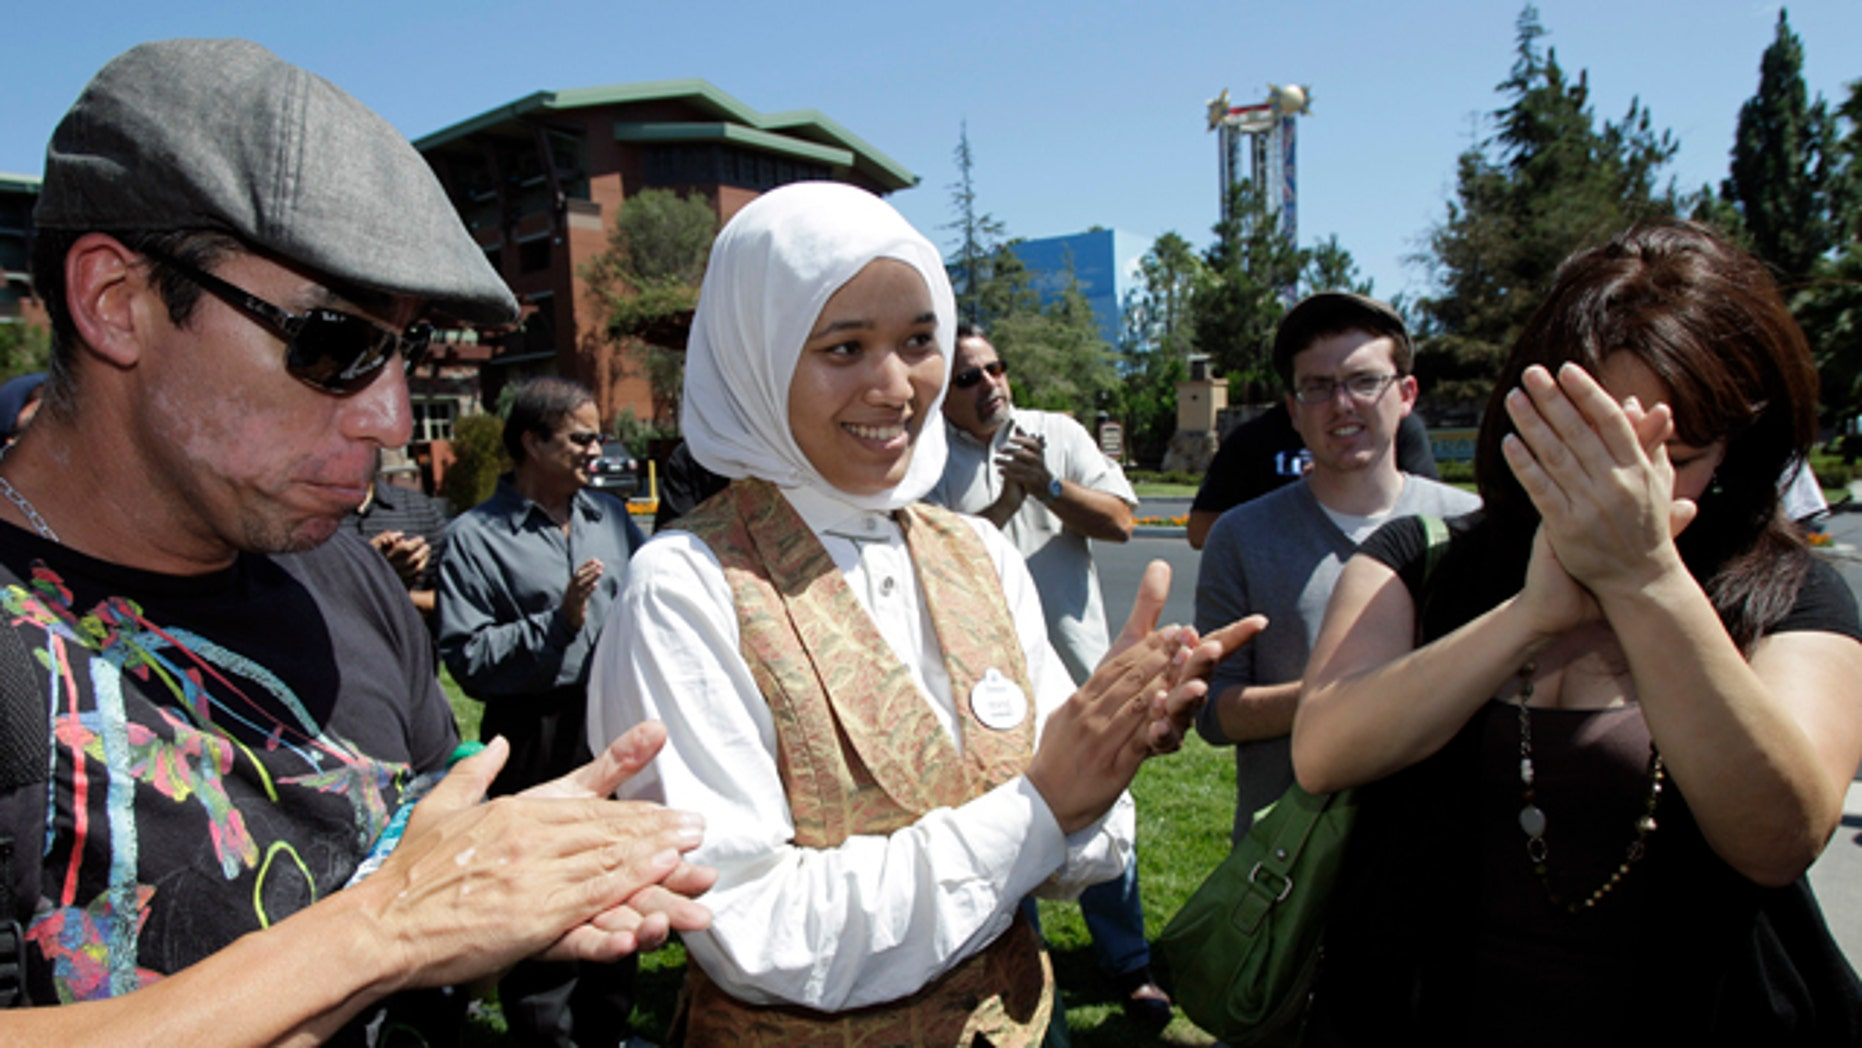 Aug. 18: Imane Boudlal, center, a Muslim woman who works as a hostess at a Disneyland restaurant, is joined by supporters during a news conference in Anaheim, Calif.